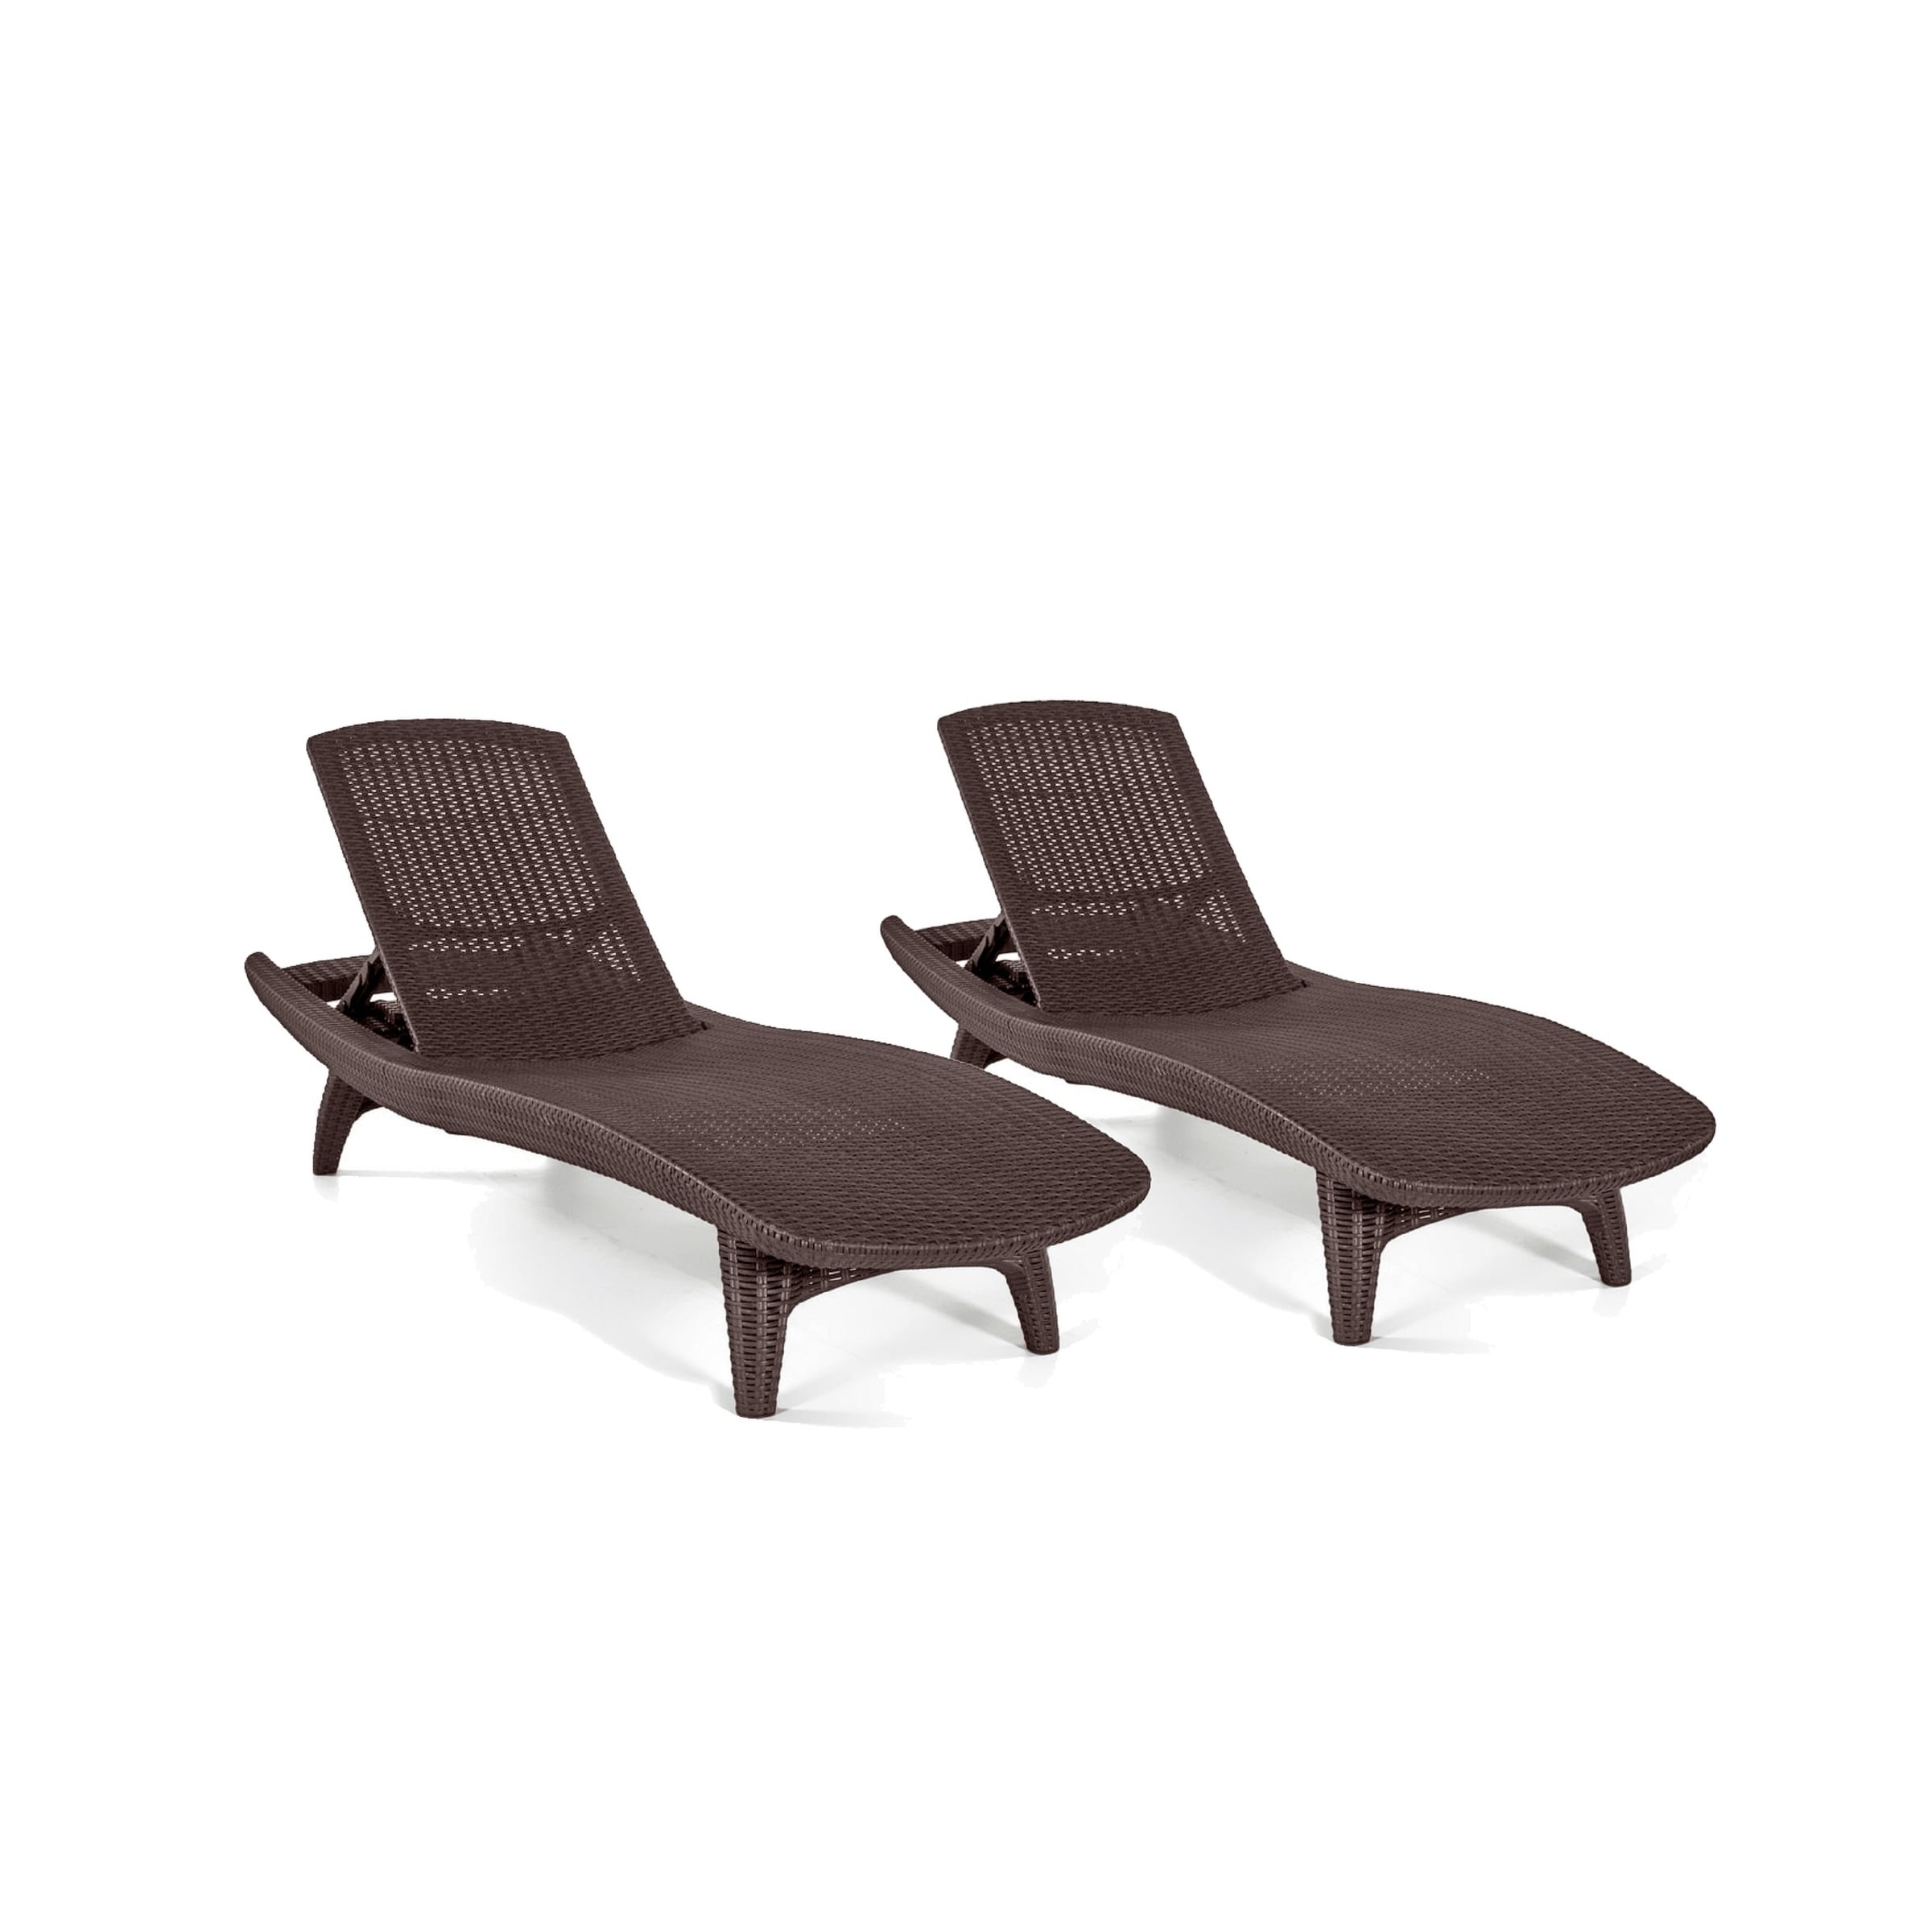 Keter Pacific All Weather Outdoor Patio Brown Chaise Lounge (Set Regarding Well Liked Keter Chaise Lounge Chairs (View 6 of 15)